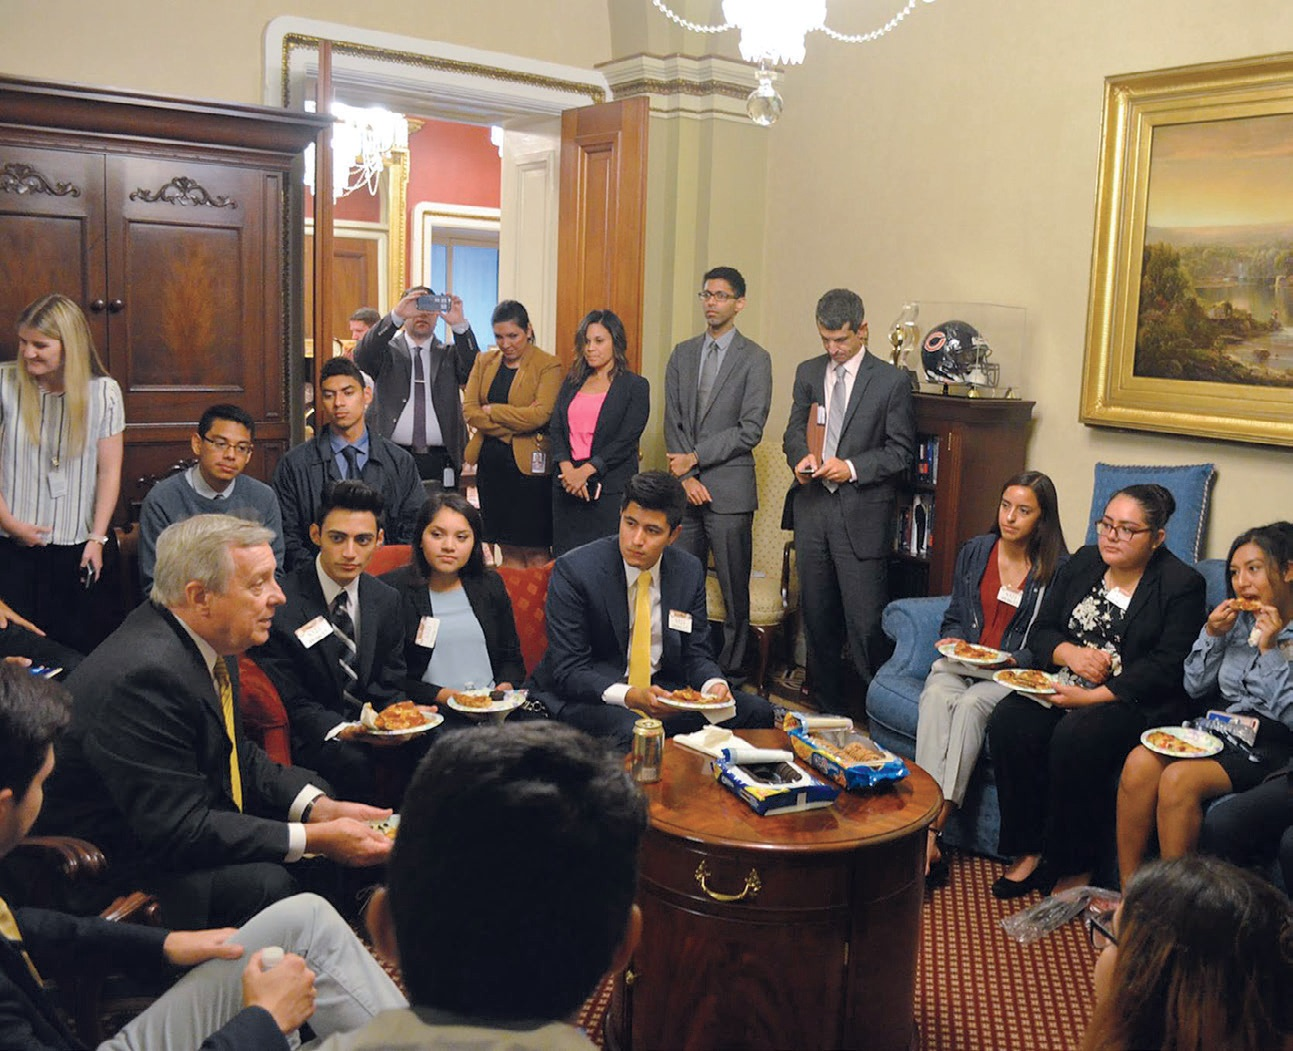 Senator Richard Durbin (F'66, L'69) co-introduced the Dream Act of 2017, a bipartisan bill that would provide a direct road to U.S. citizenship